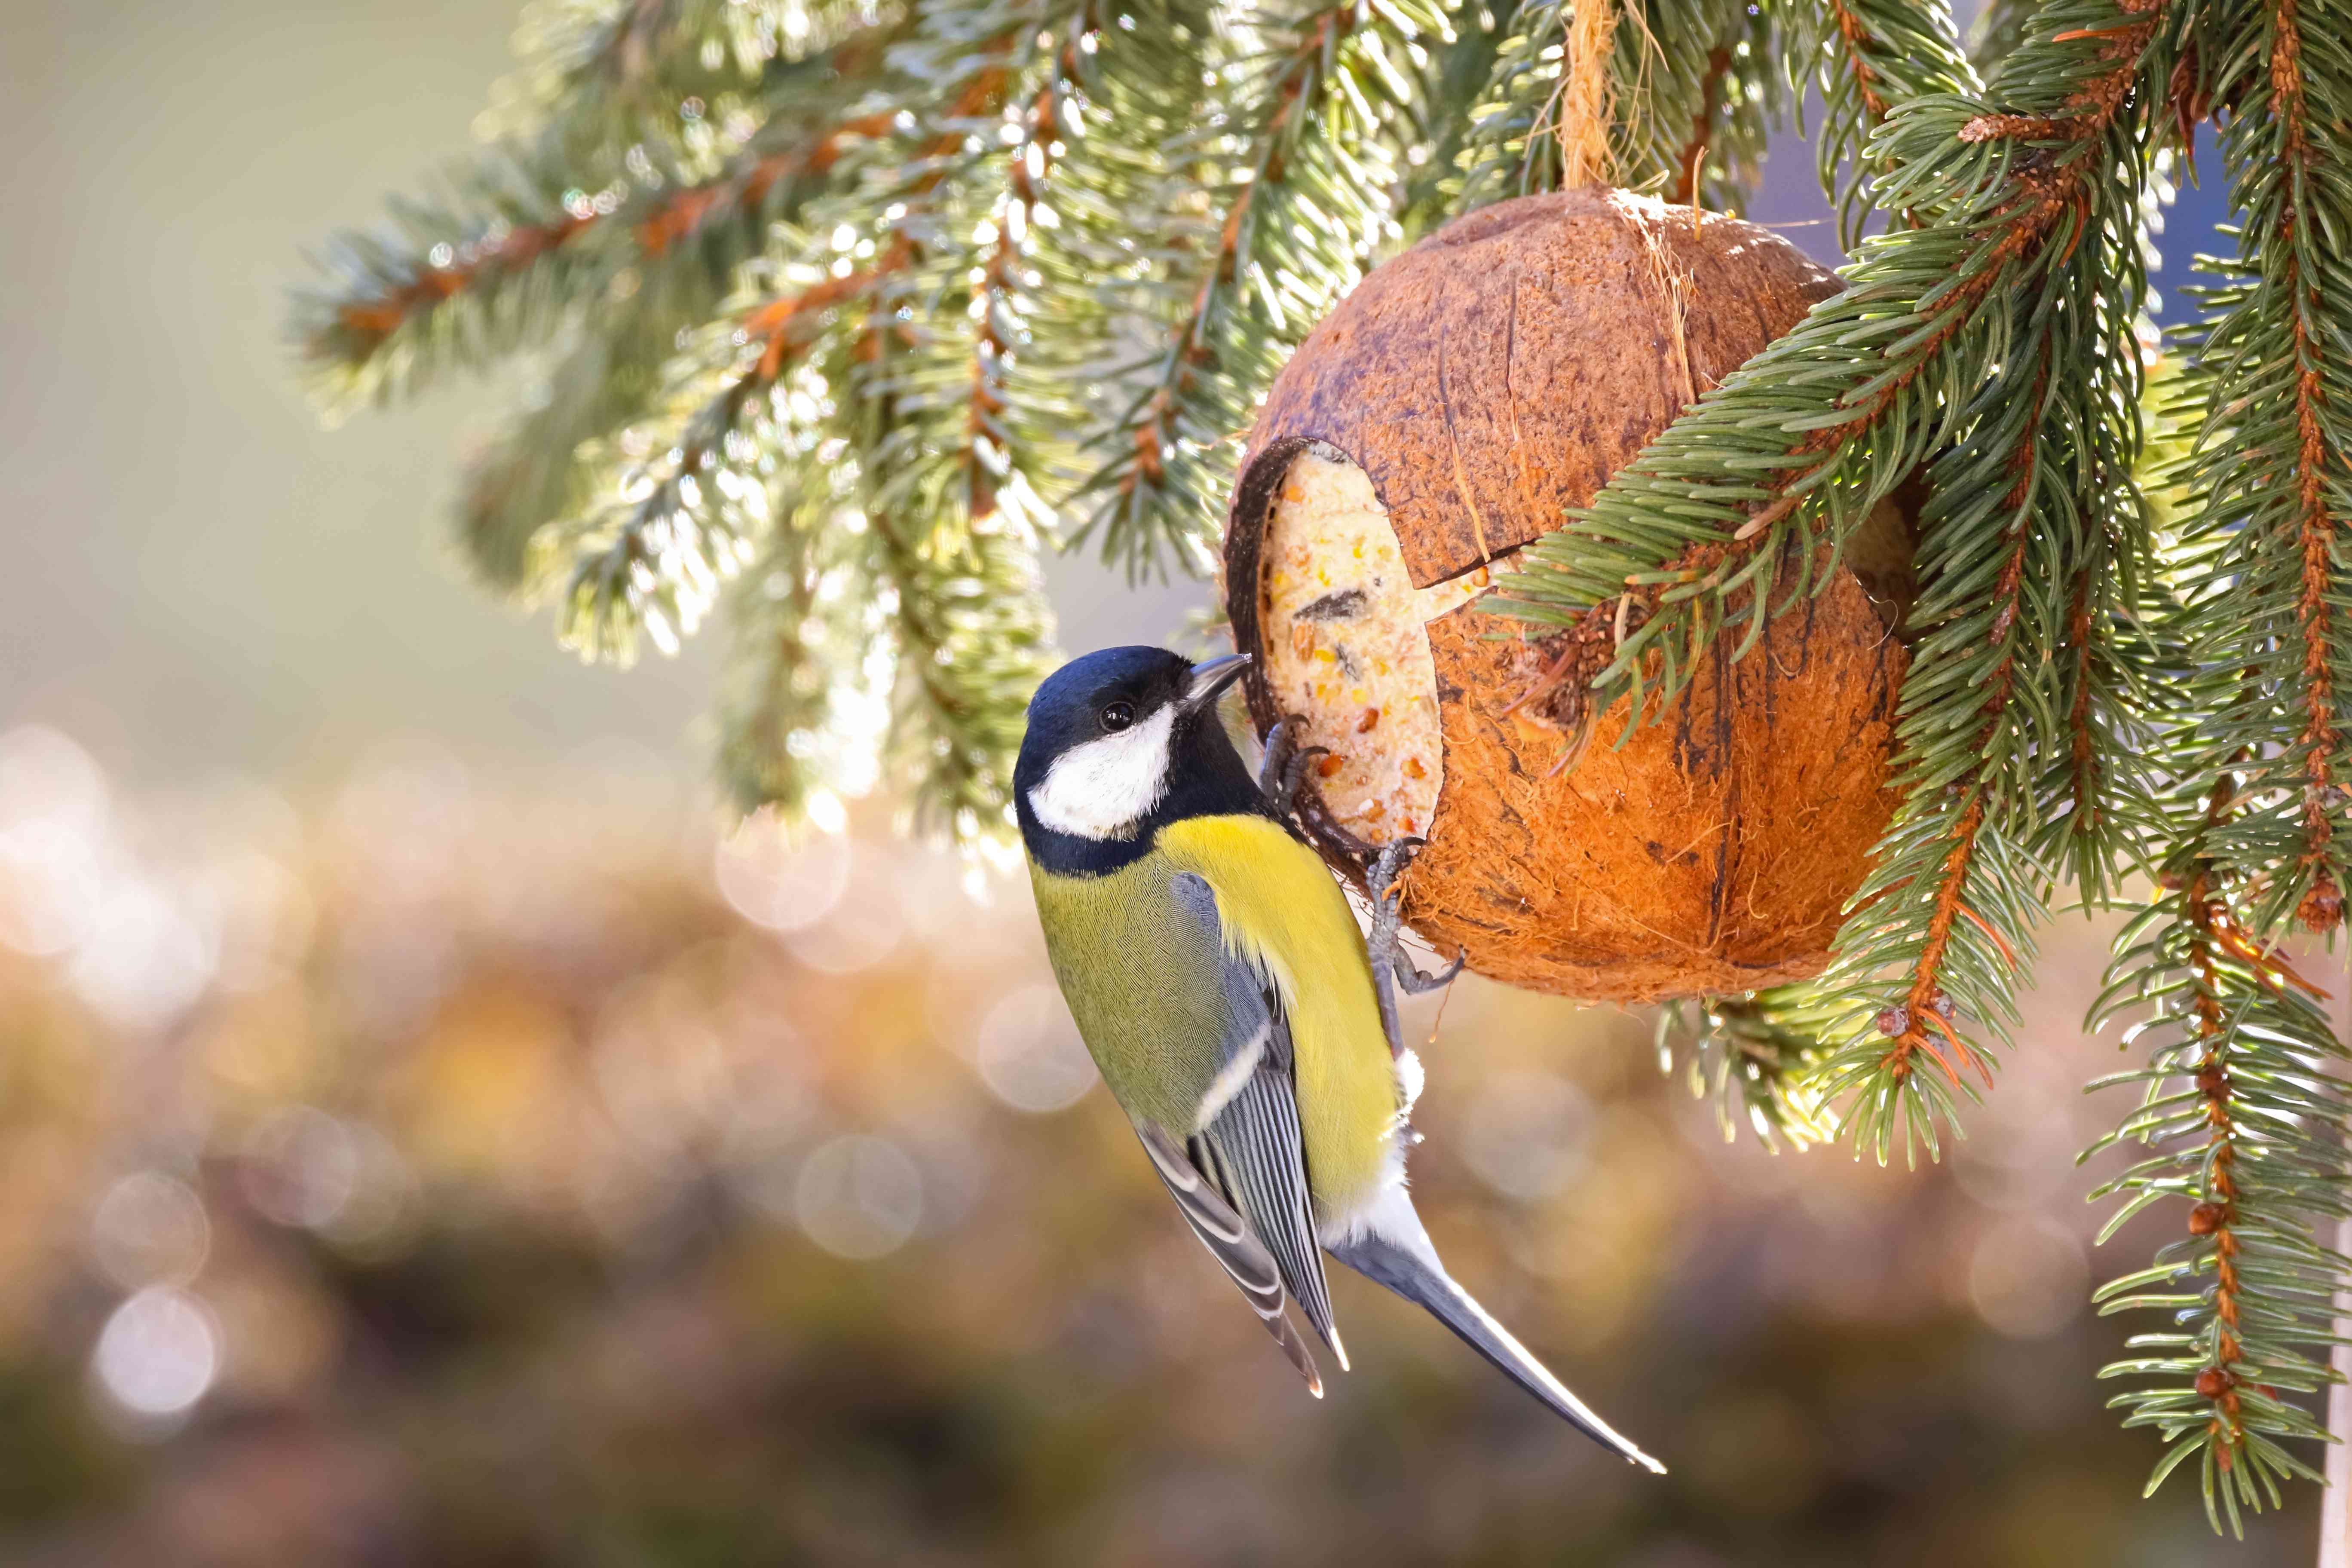 A great tit eating from a coconut feeder.